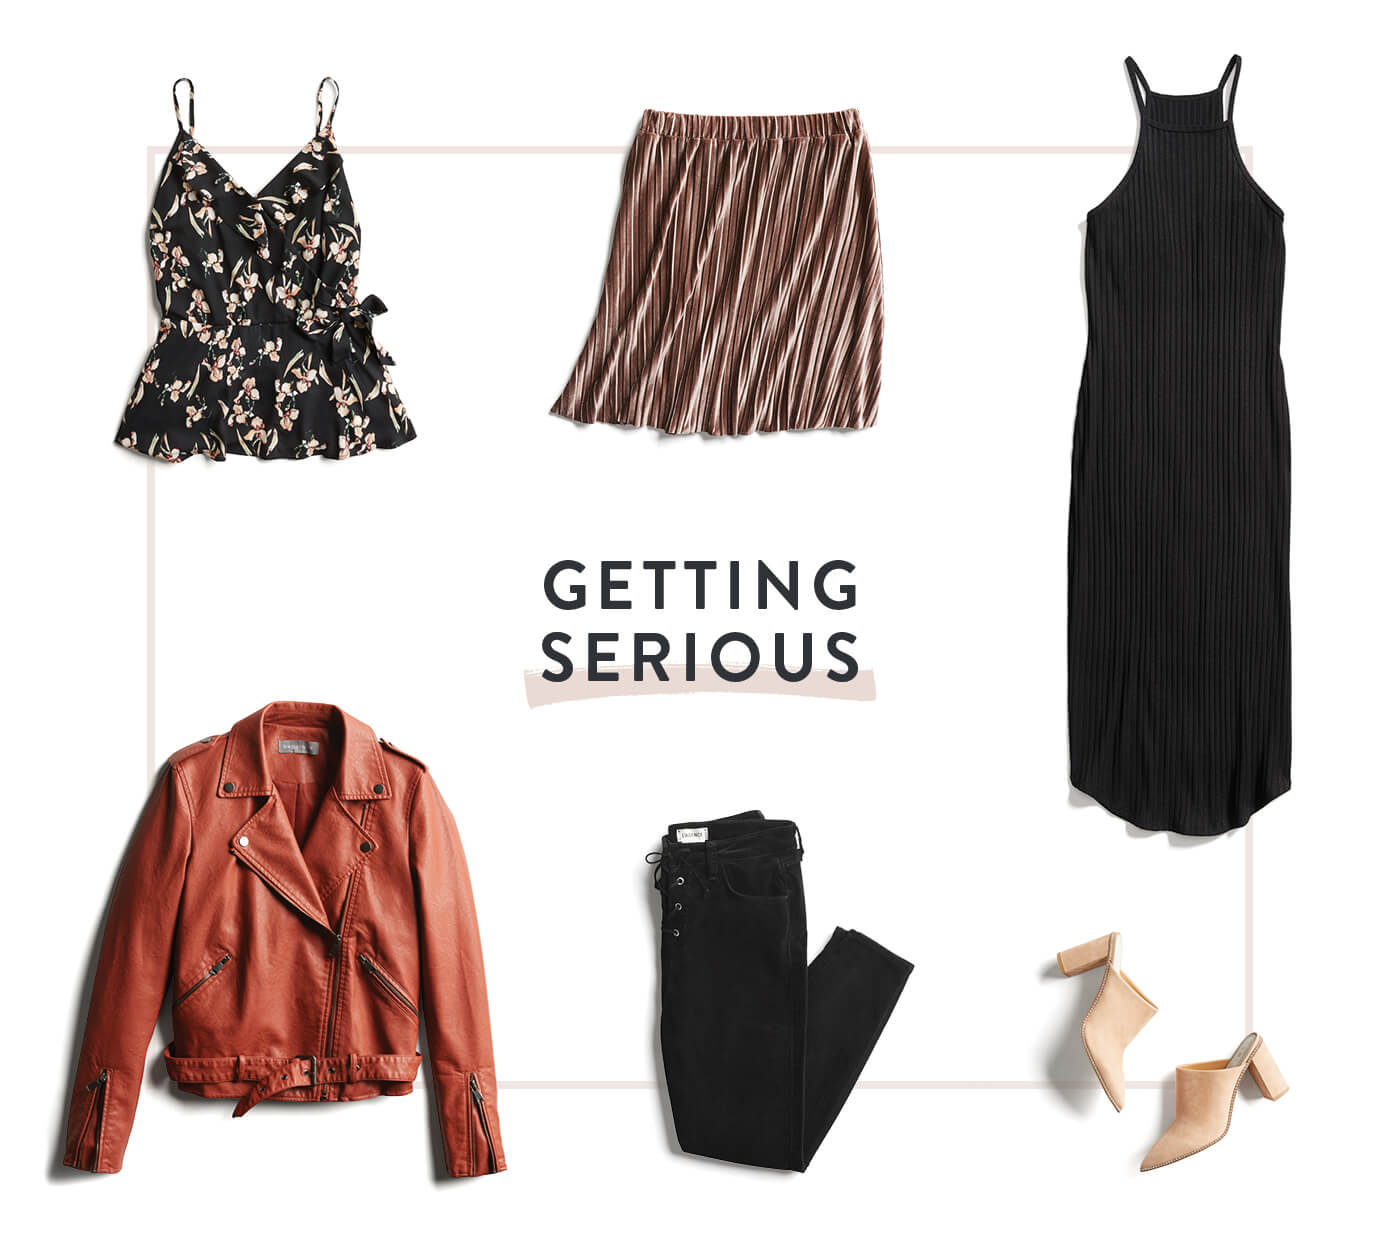 We choose an outfit: what to go to the cinema